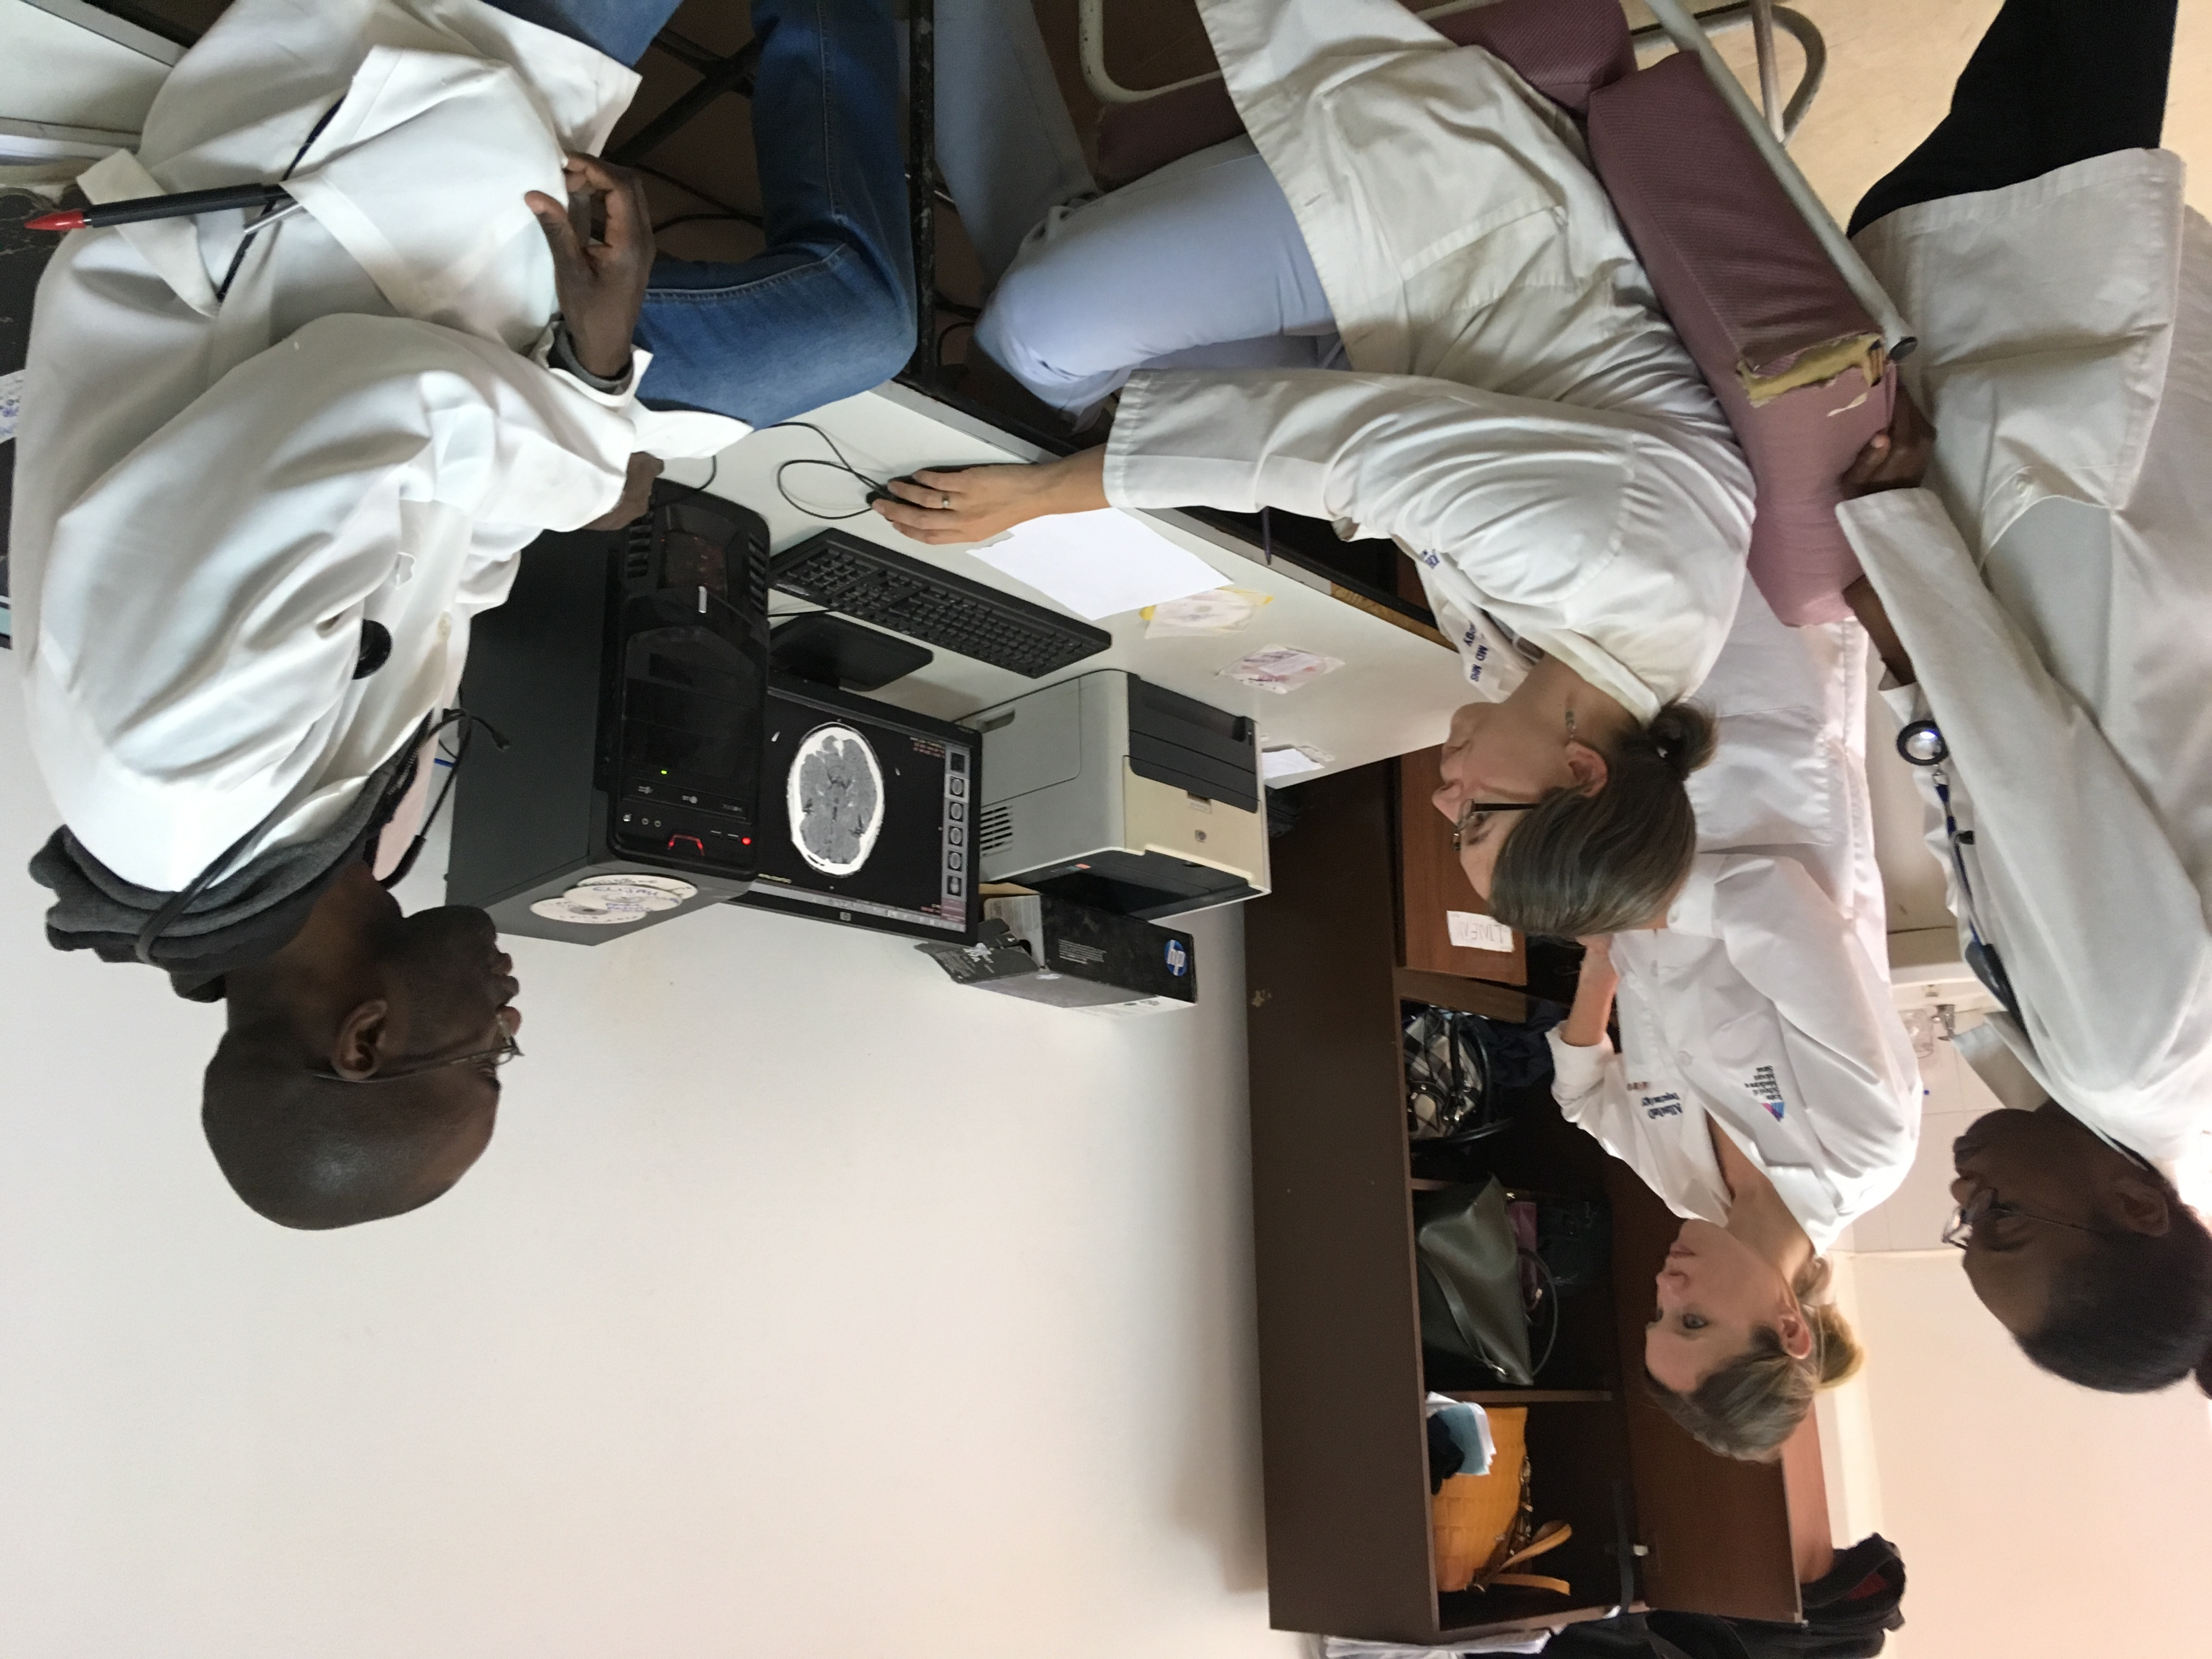 (From left) Lorraine Chishimba, Alison Navis (a visting American, Deanna Saylor and Stanley Zimba examine CT scans of UTH patients